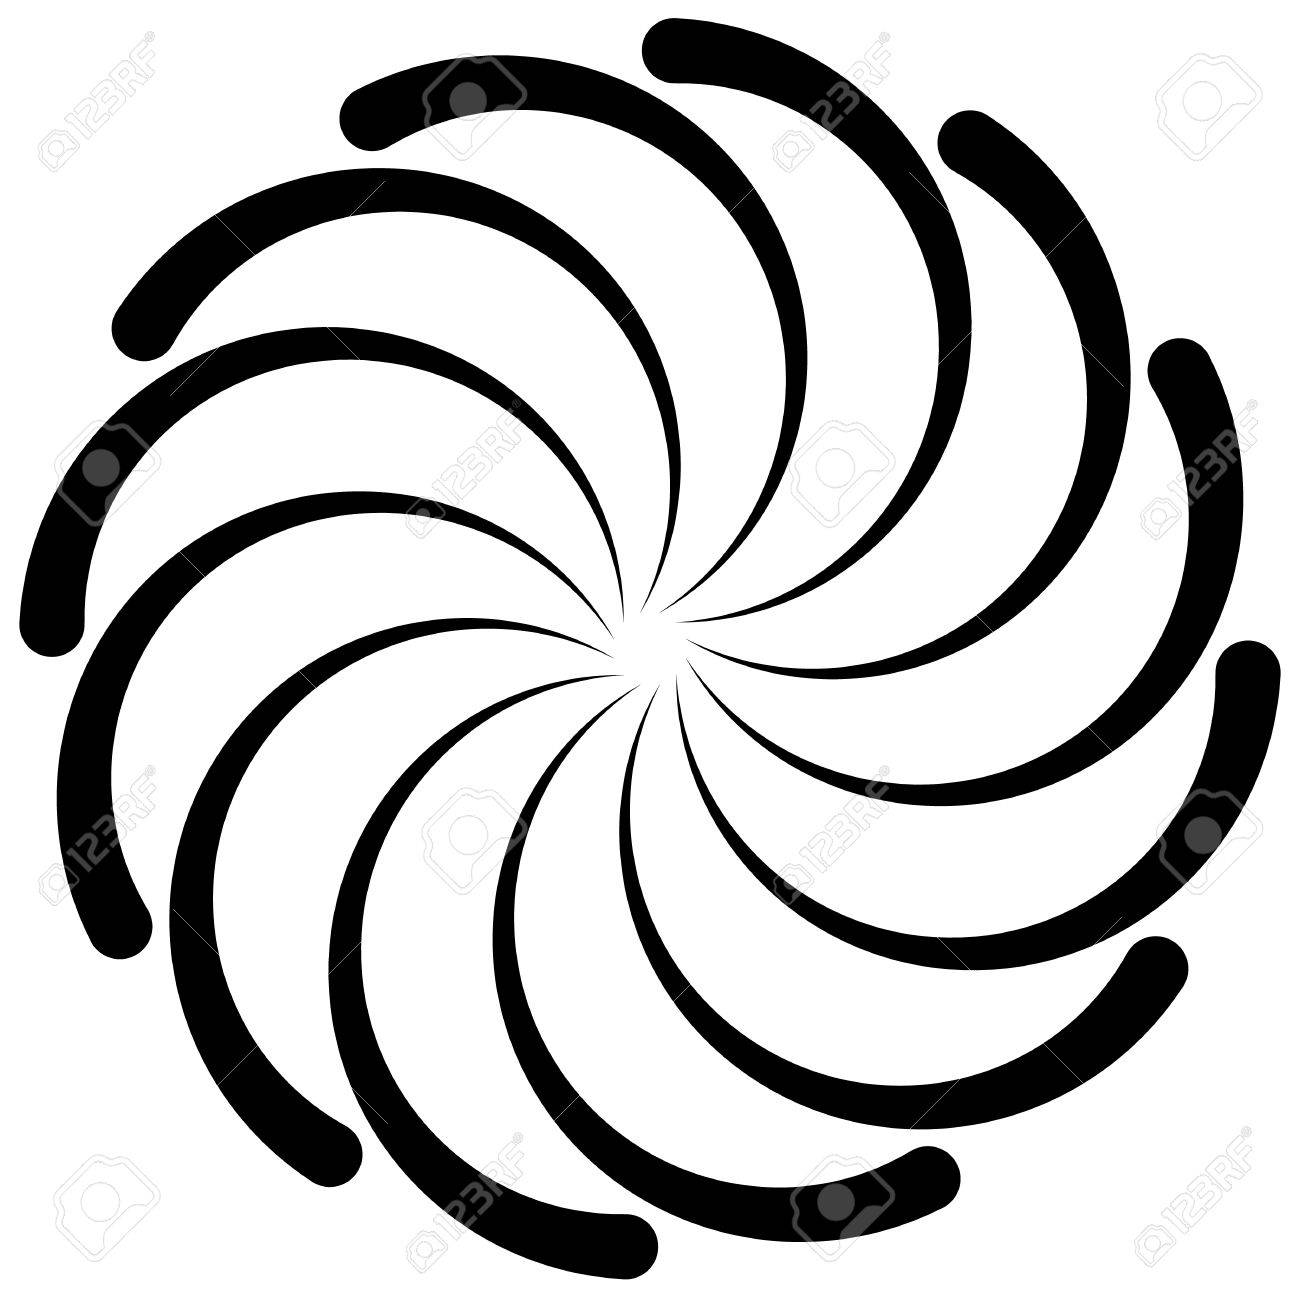 1300x1300 Spiral Shape On White. Curved Lines Rotating From A Centric Point